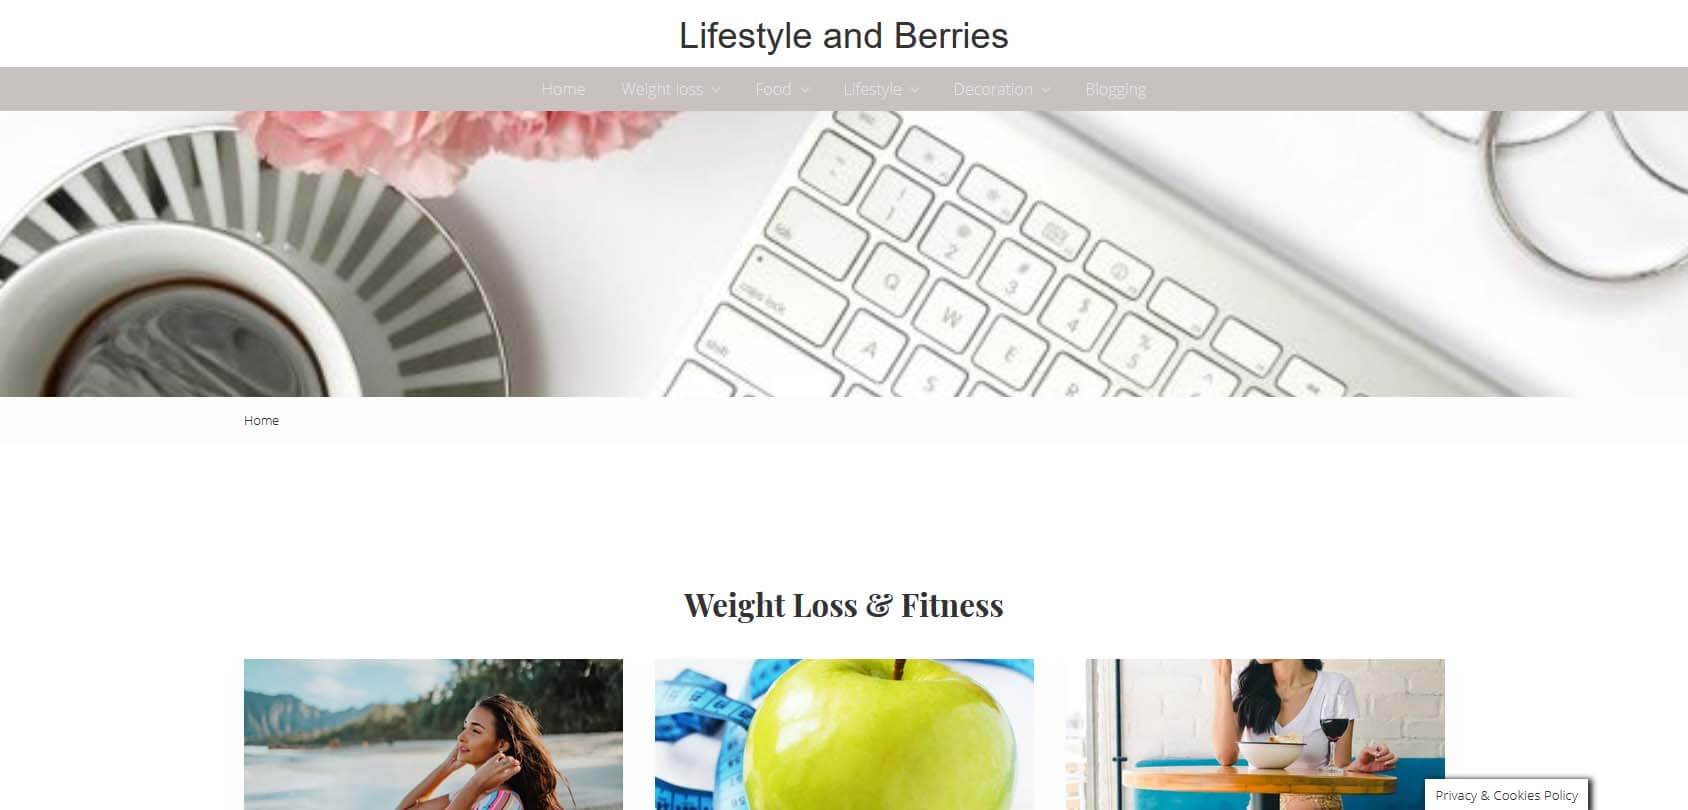 Lifestyle and Berries Homepage